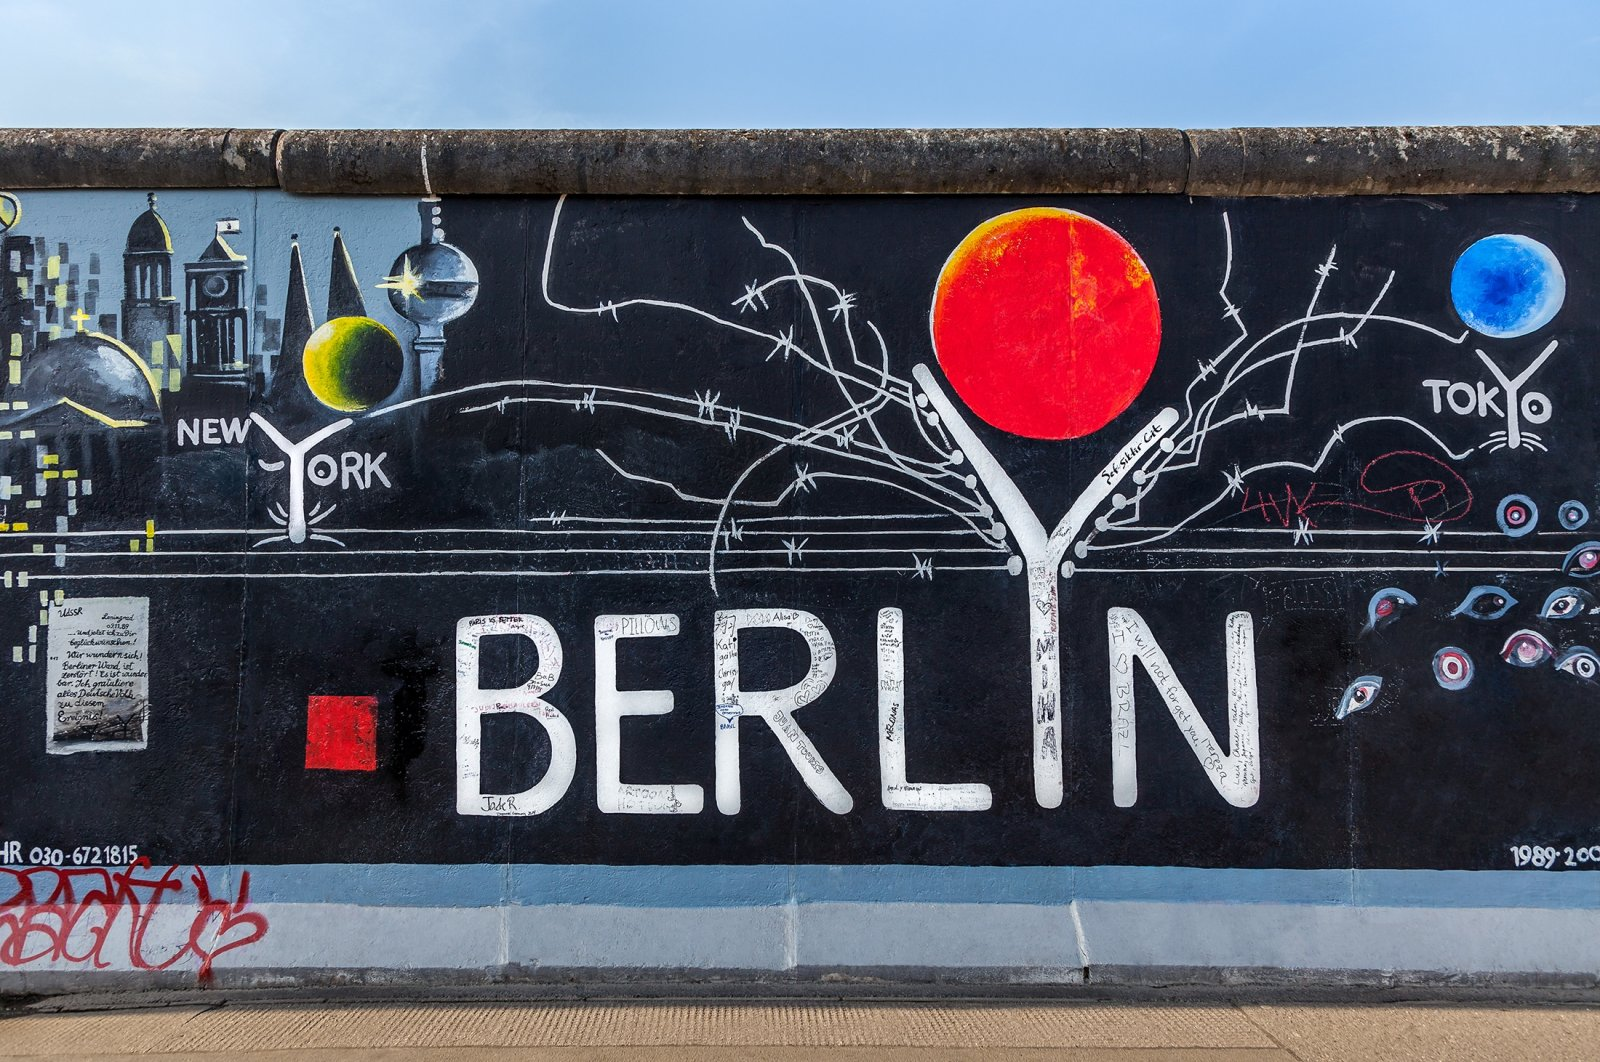 Various graffiti marking different cities can be seen on a part of the original Berlin Wall at East Side Gallery, Berlin, Germany, Sept. 15, 2014.(Shutterstock Photo)